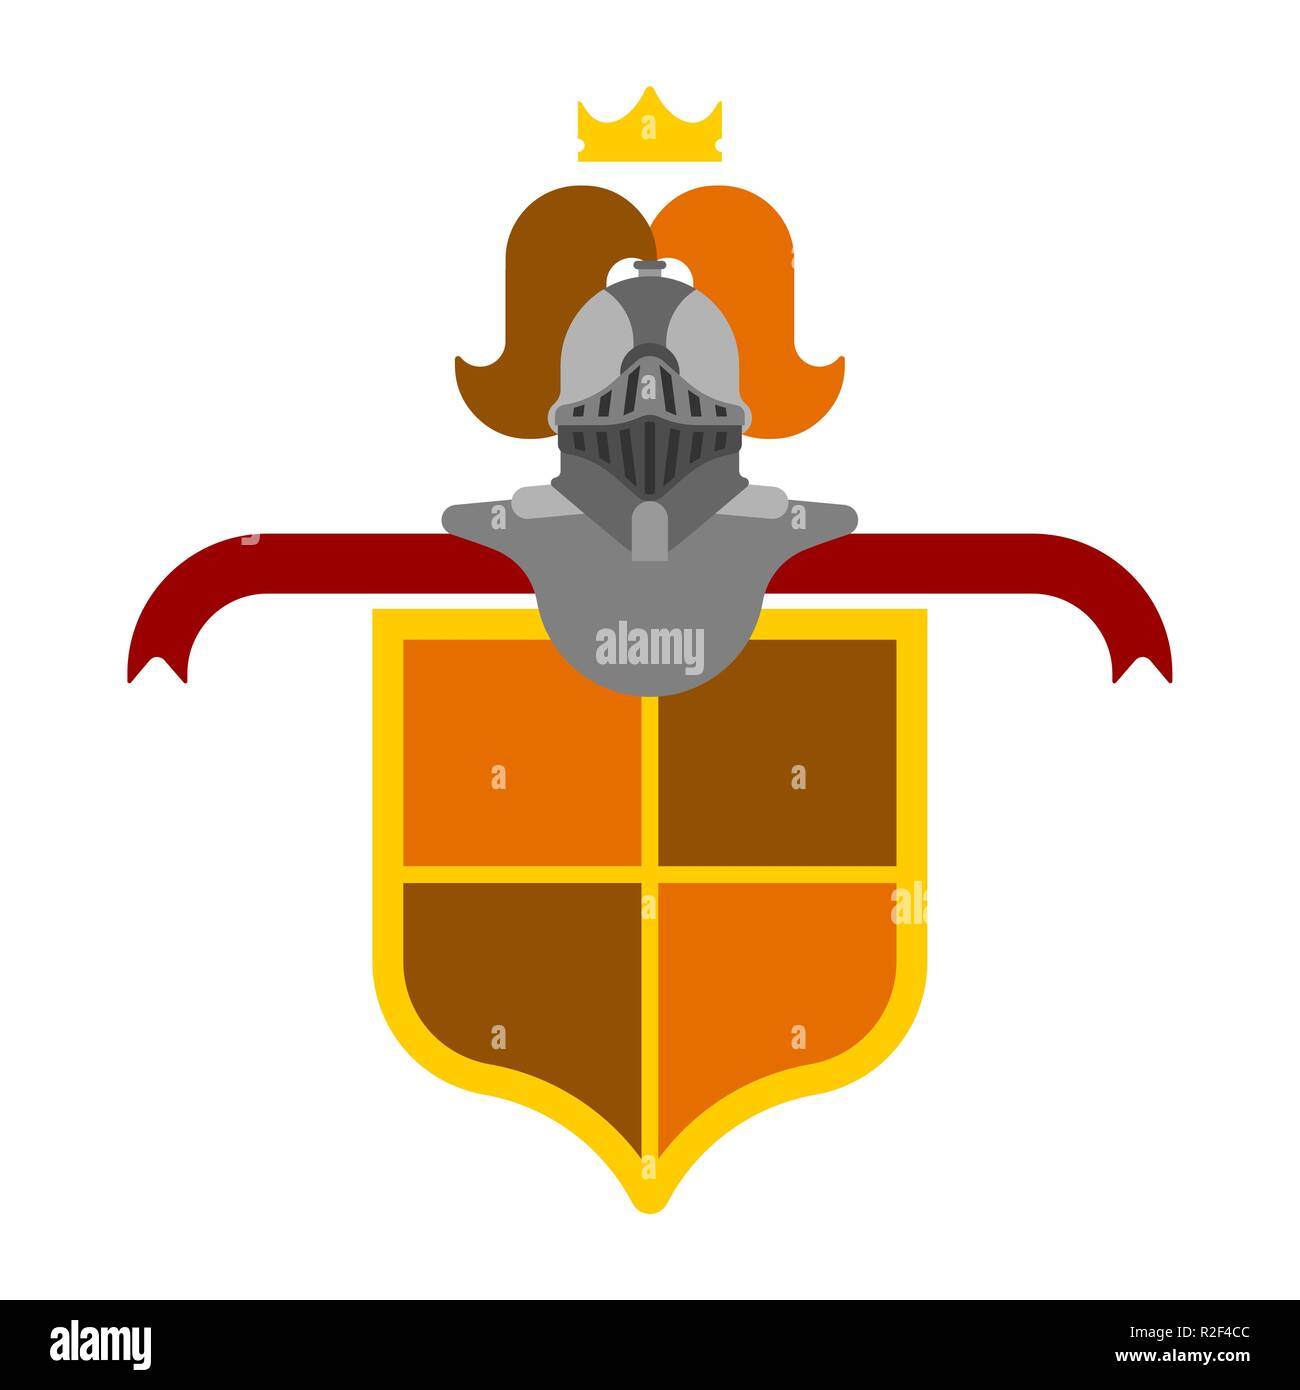 knight helmet heraldic shield template heraldry design element